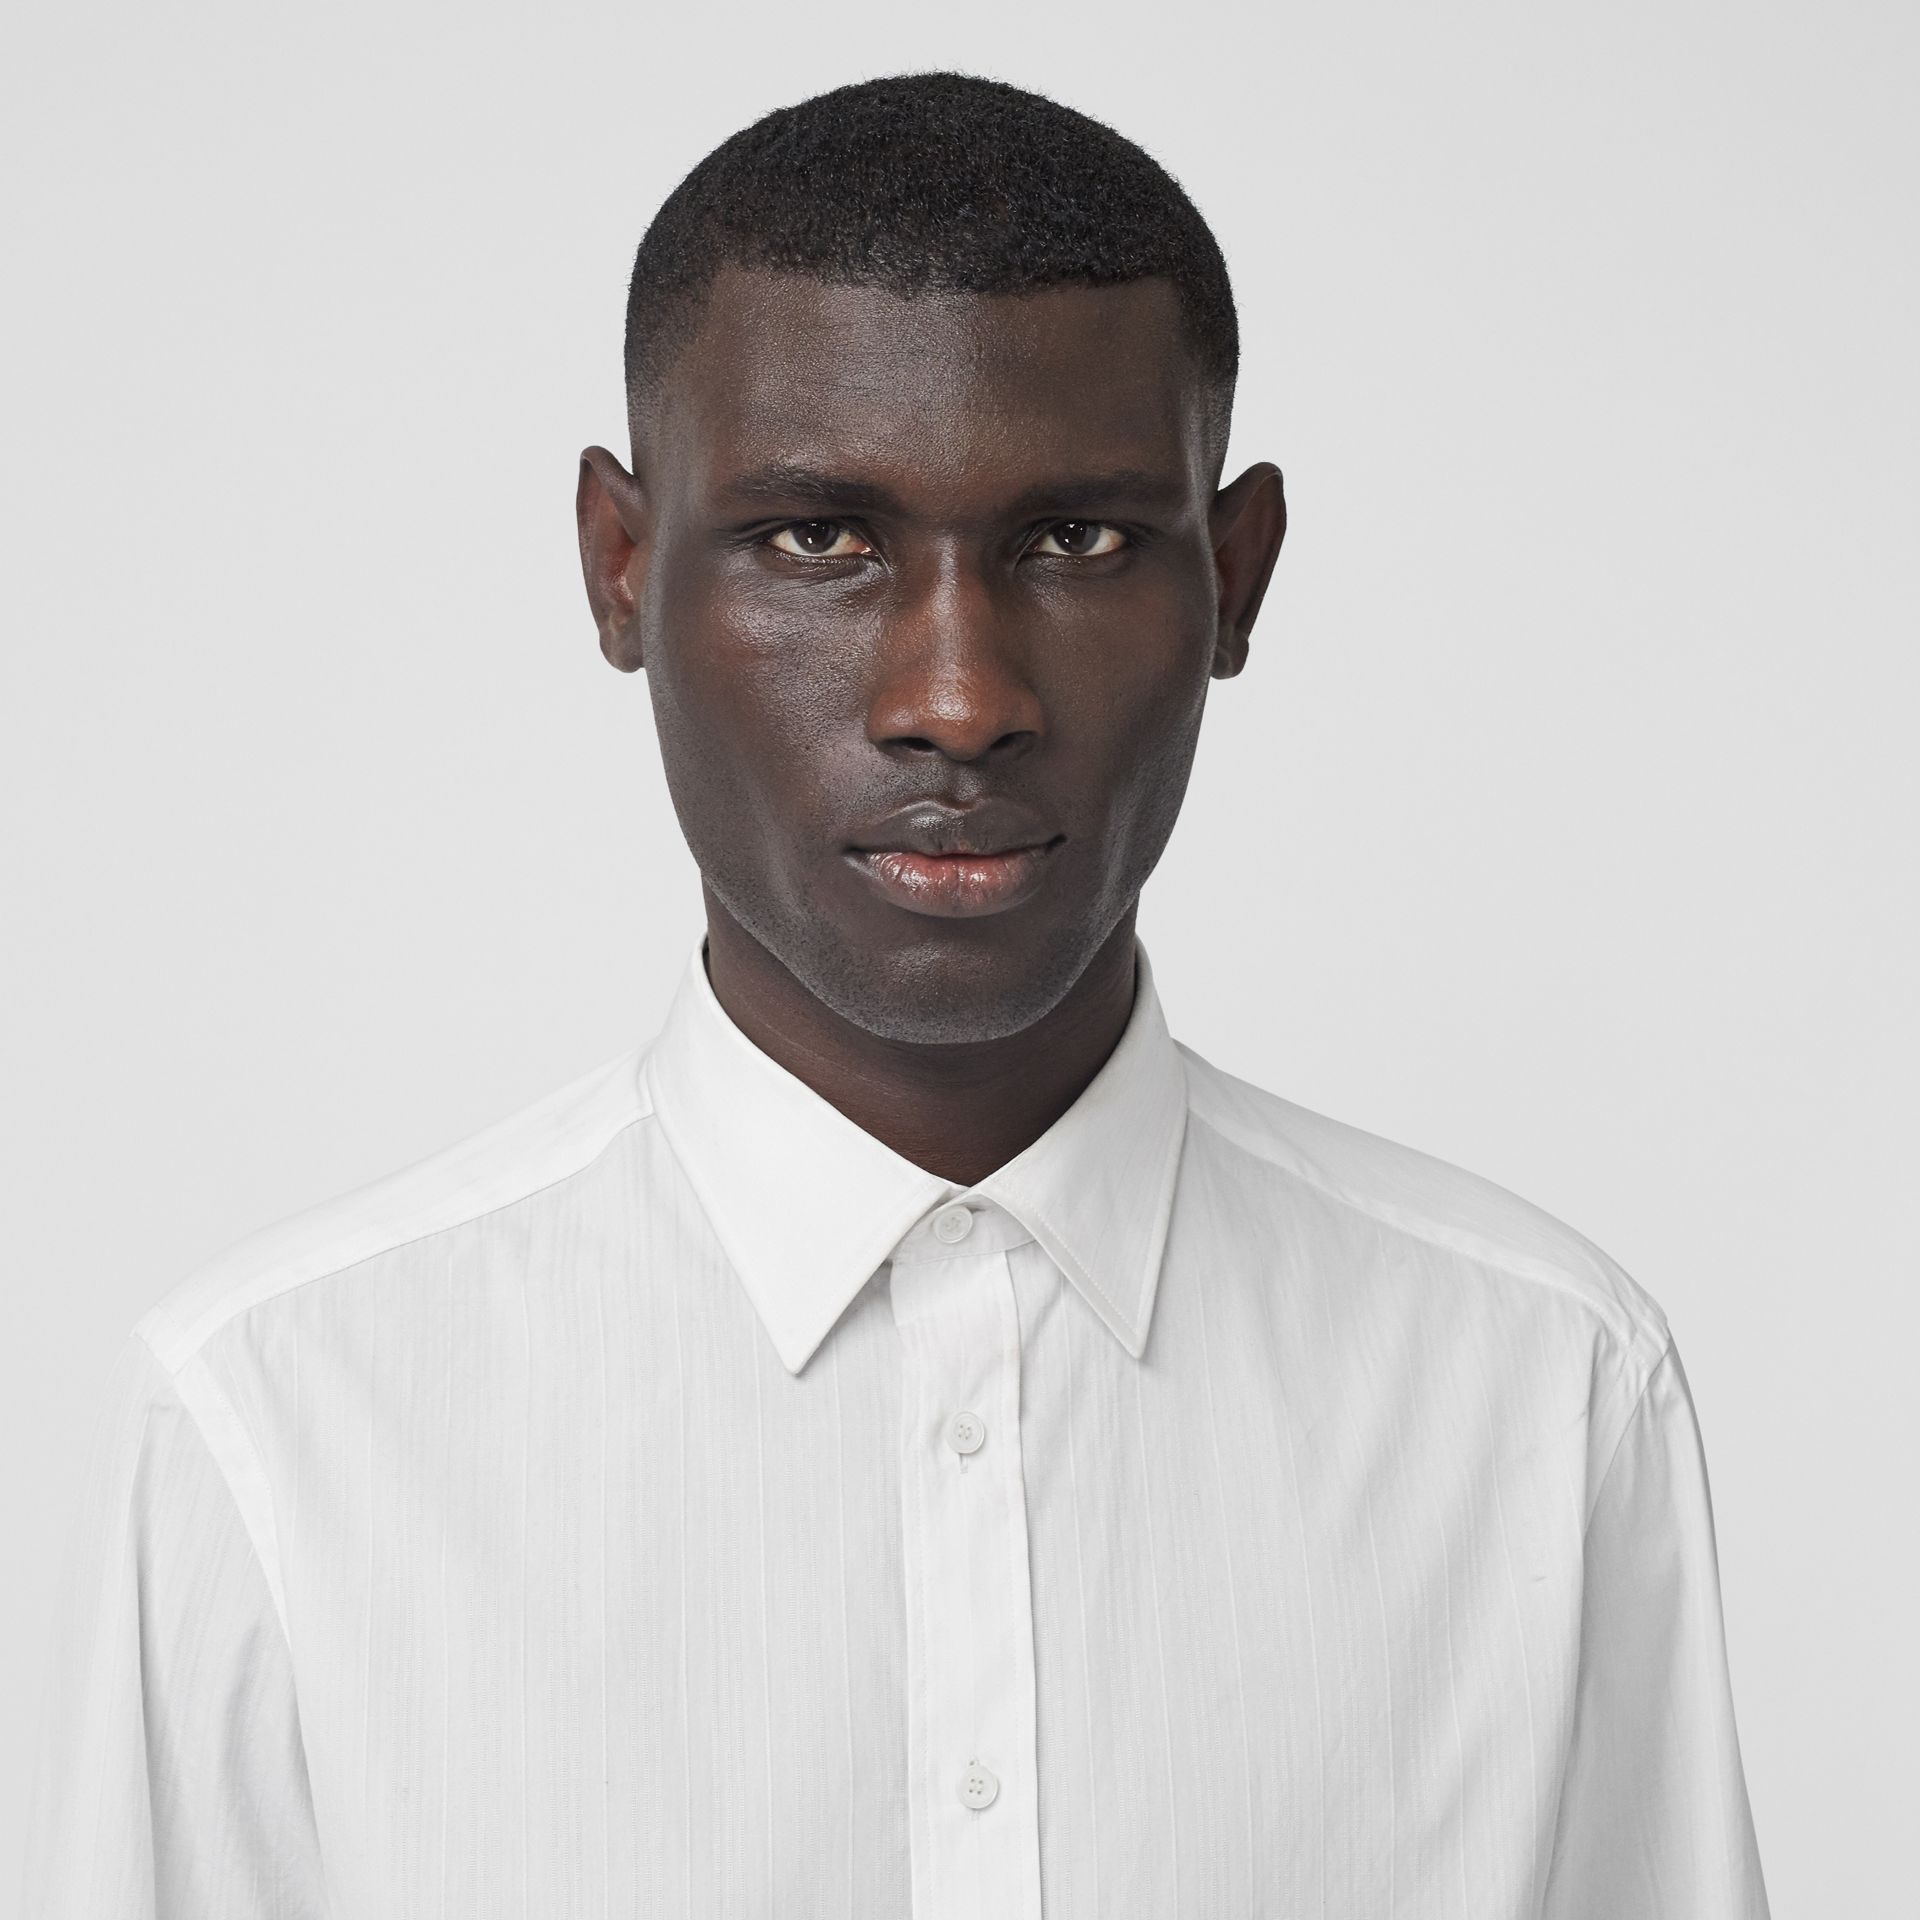 Classic Fit Striped Cotton Shirt in White - Men | Burberry - gallery image 1